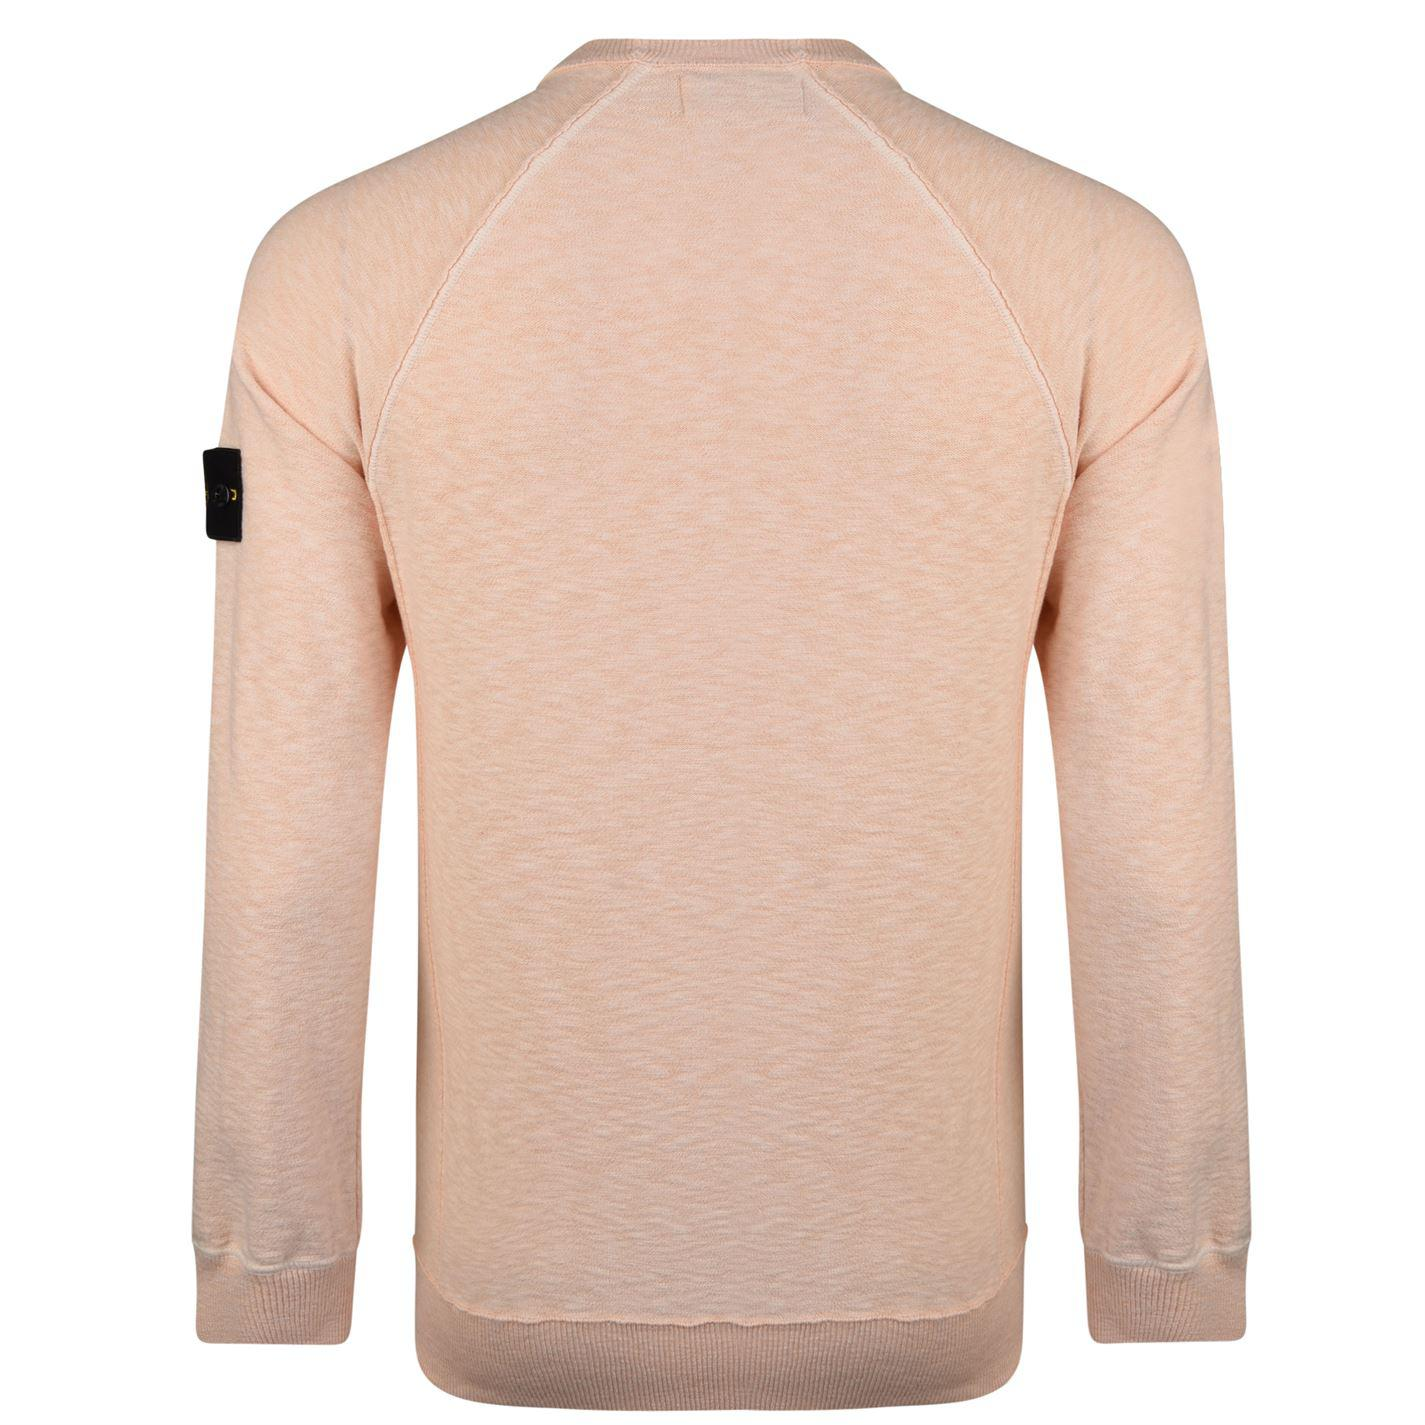 Stone Island Cotton Badge Knit Jumper in Pink for Men